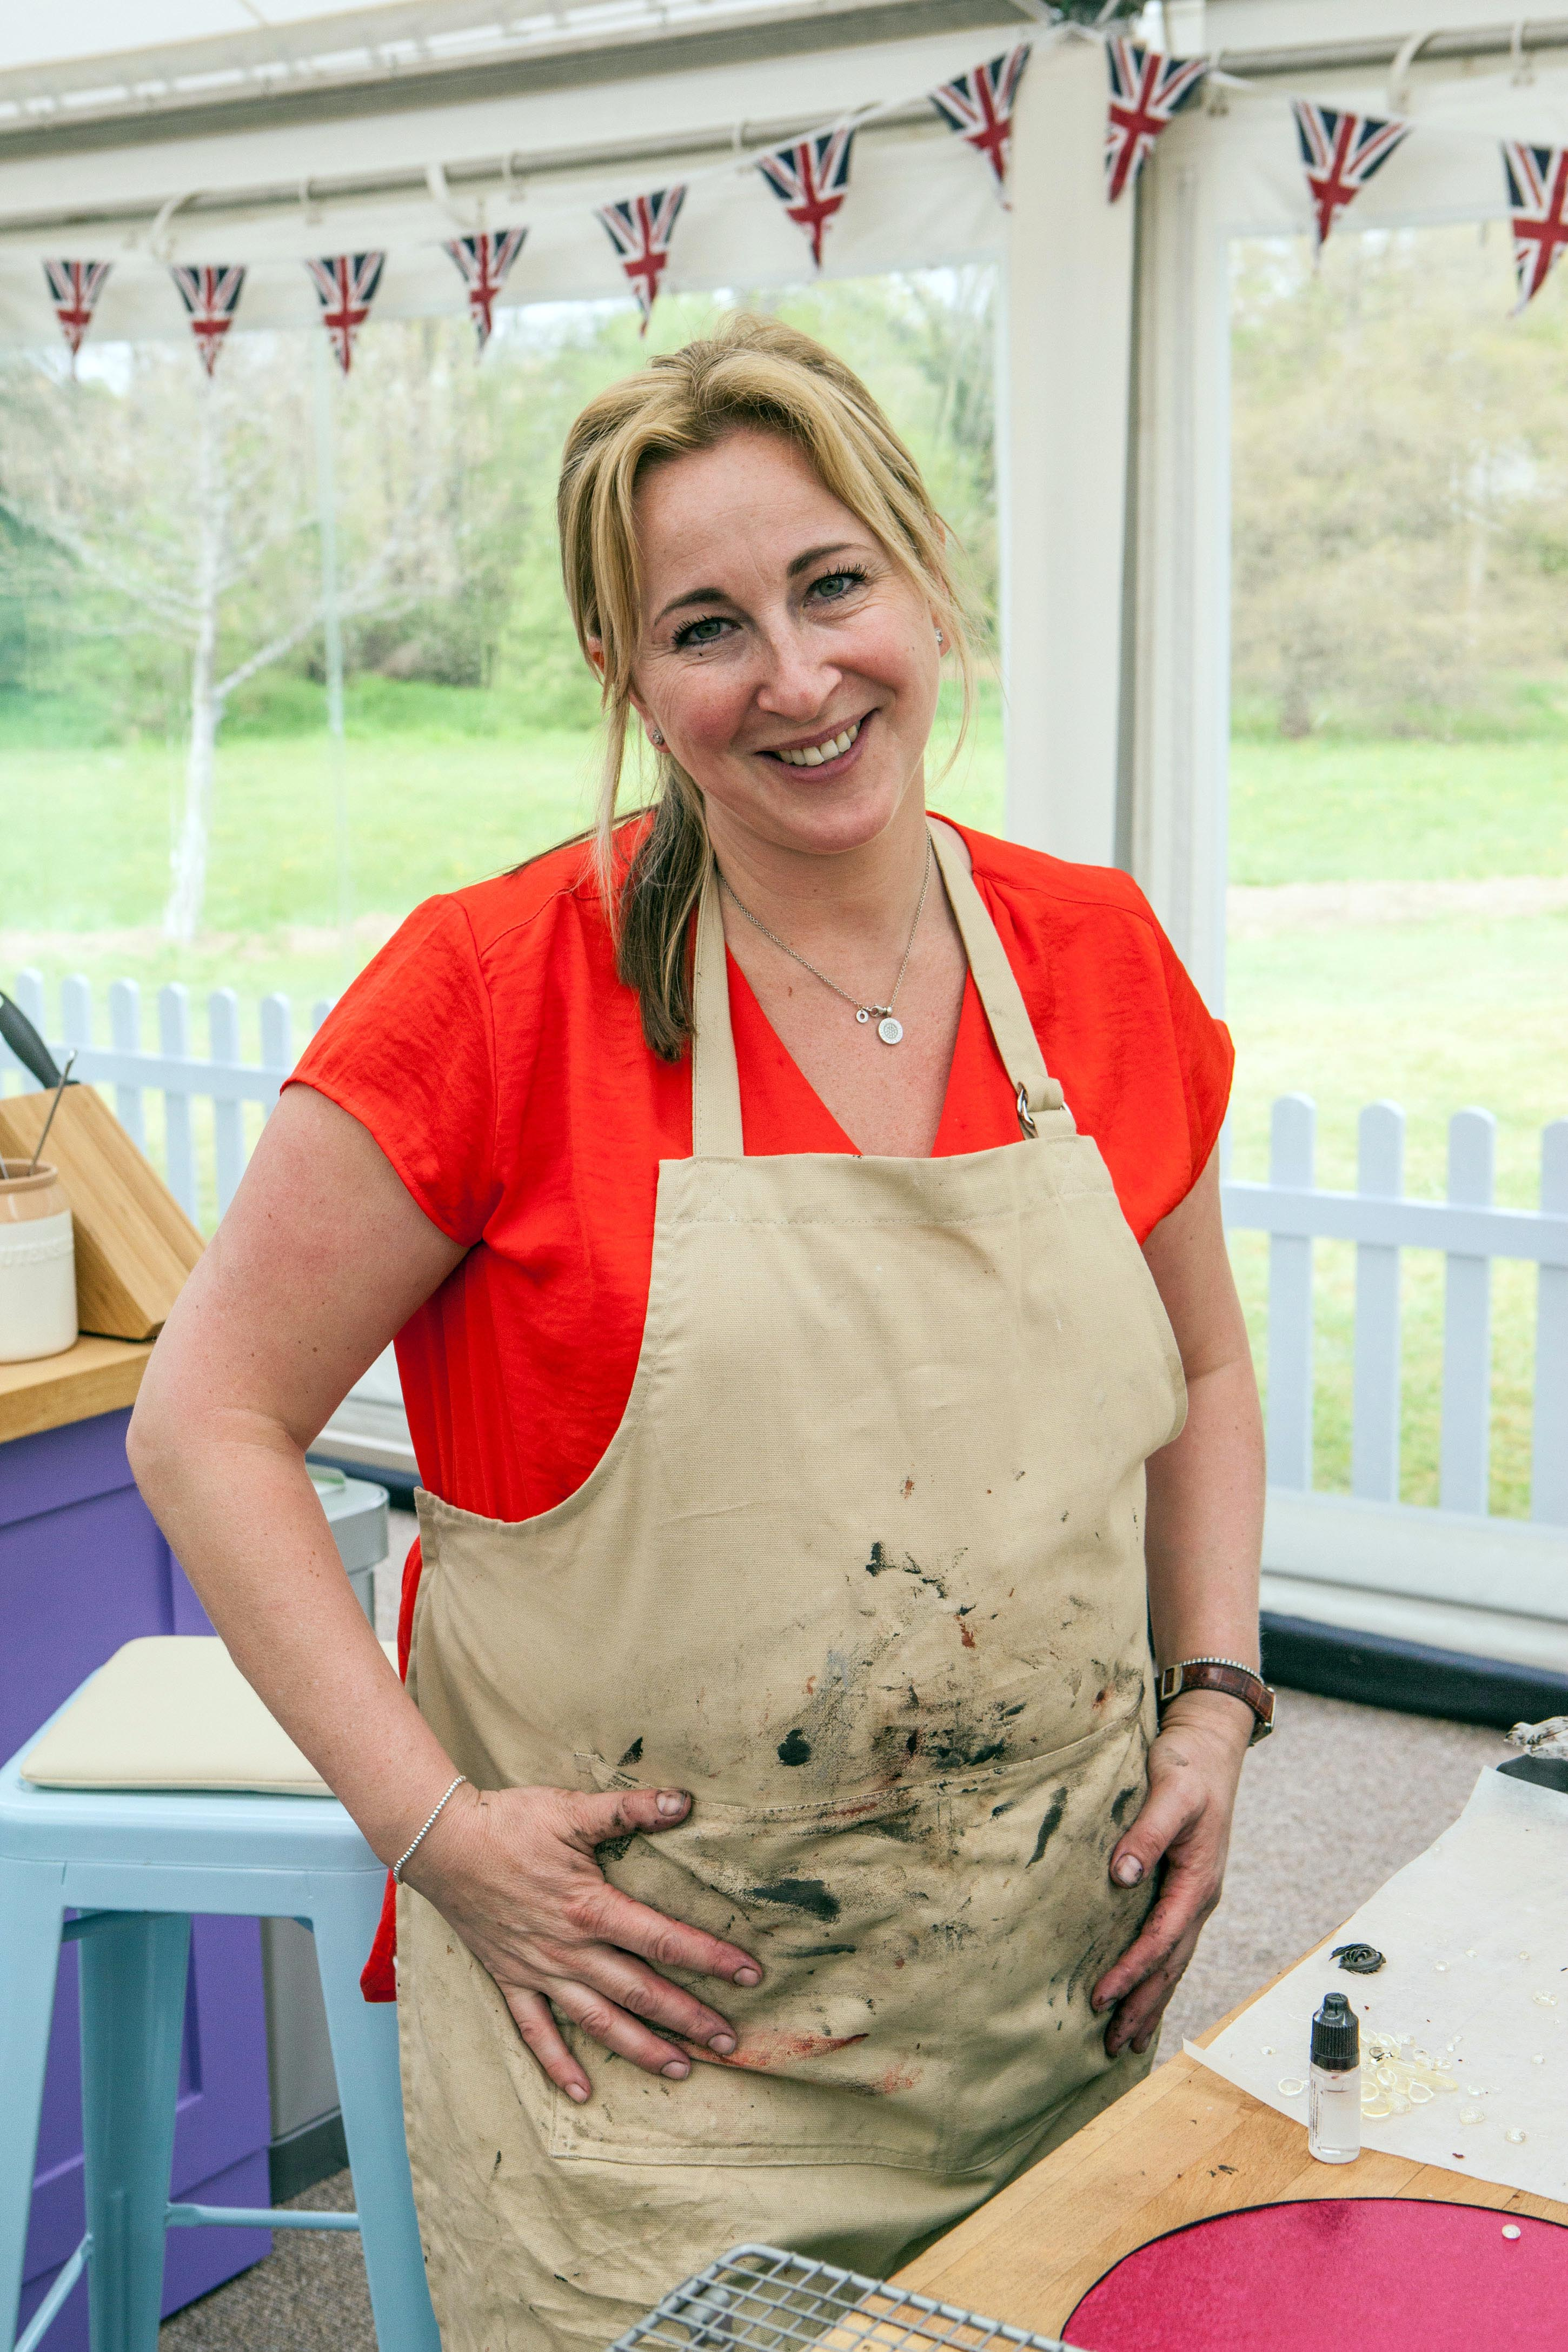 Stacey on Bake Off